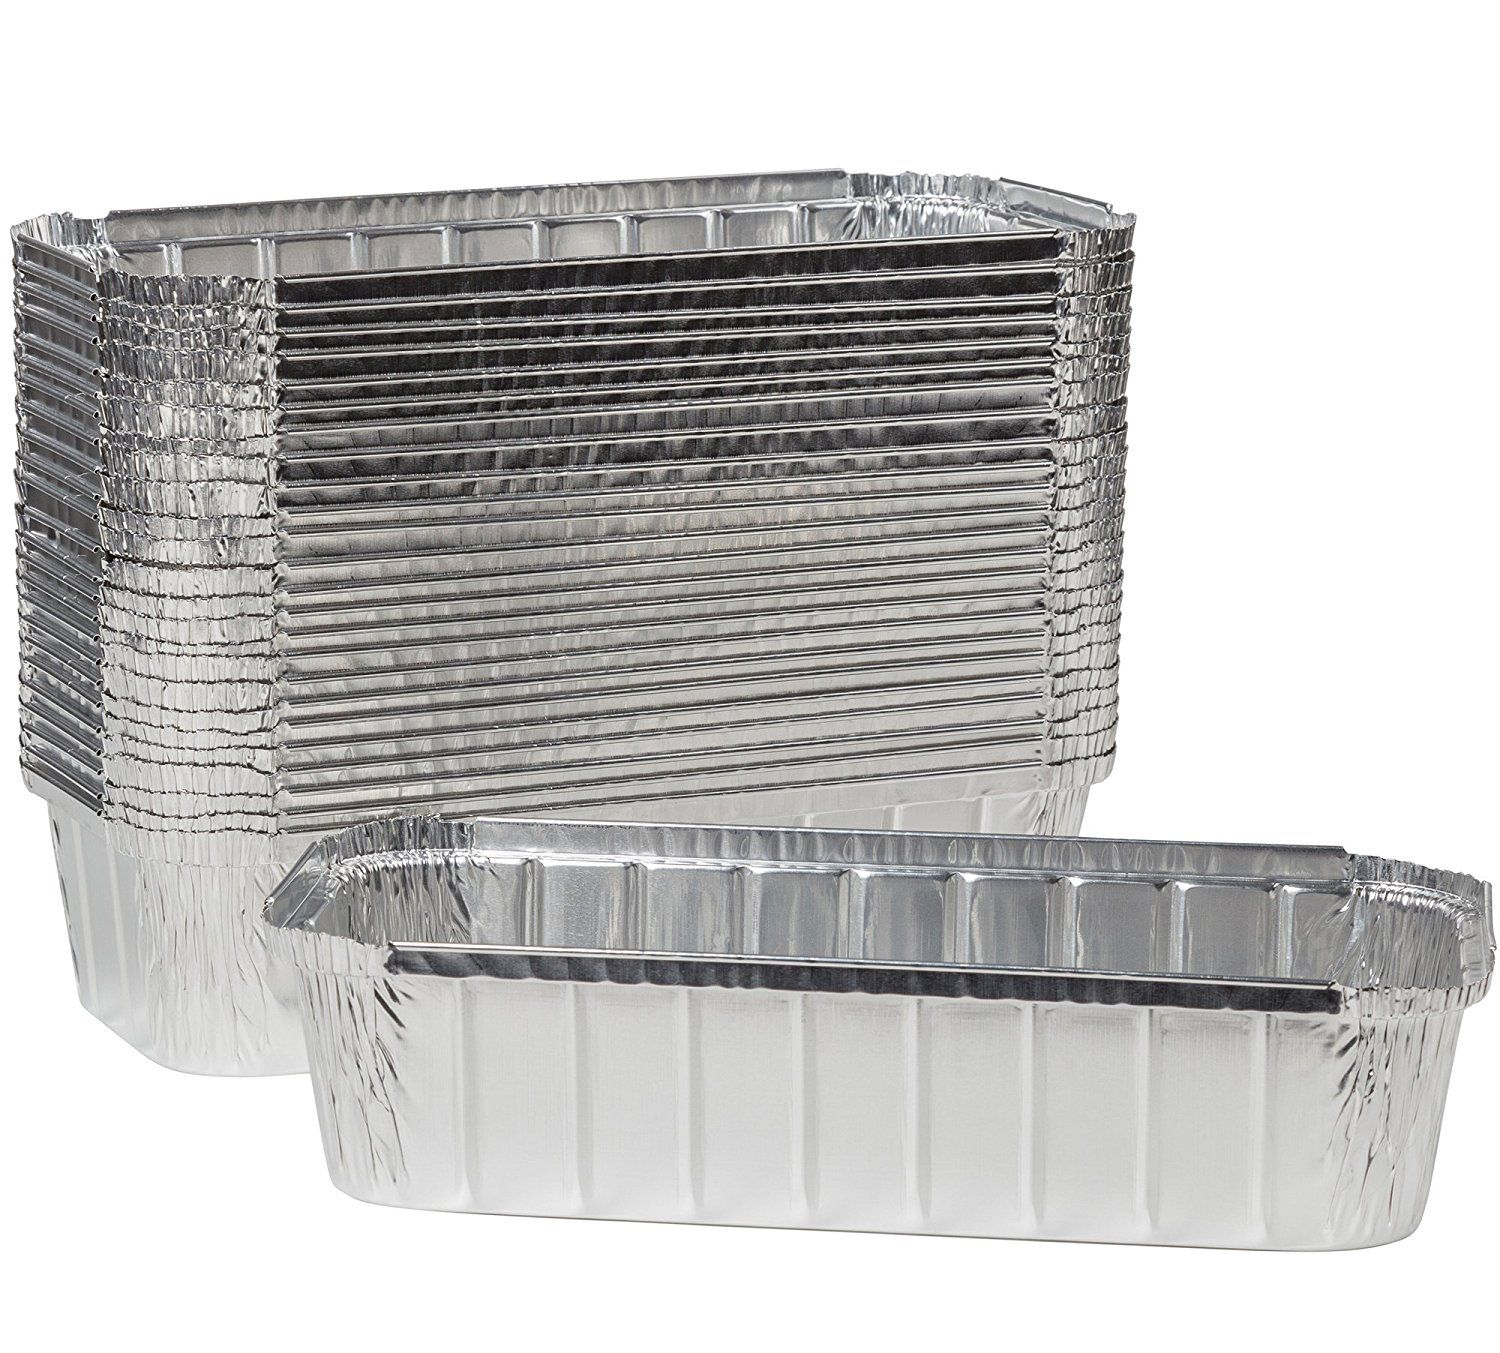 Paksh Disposable Aluminum Loaf Pans Pack Of 50 Bread Tin